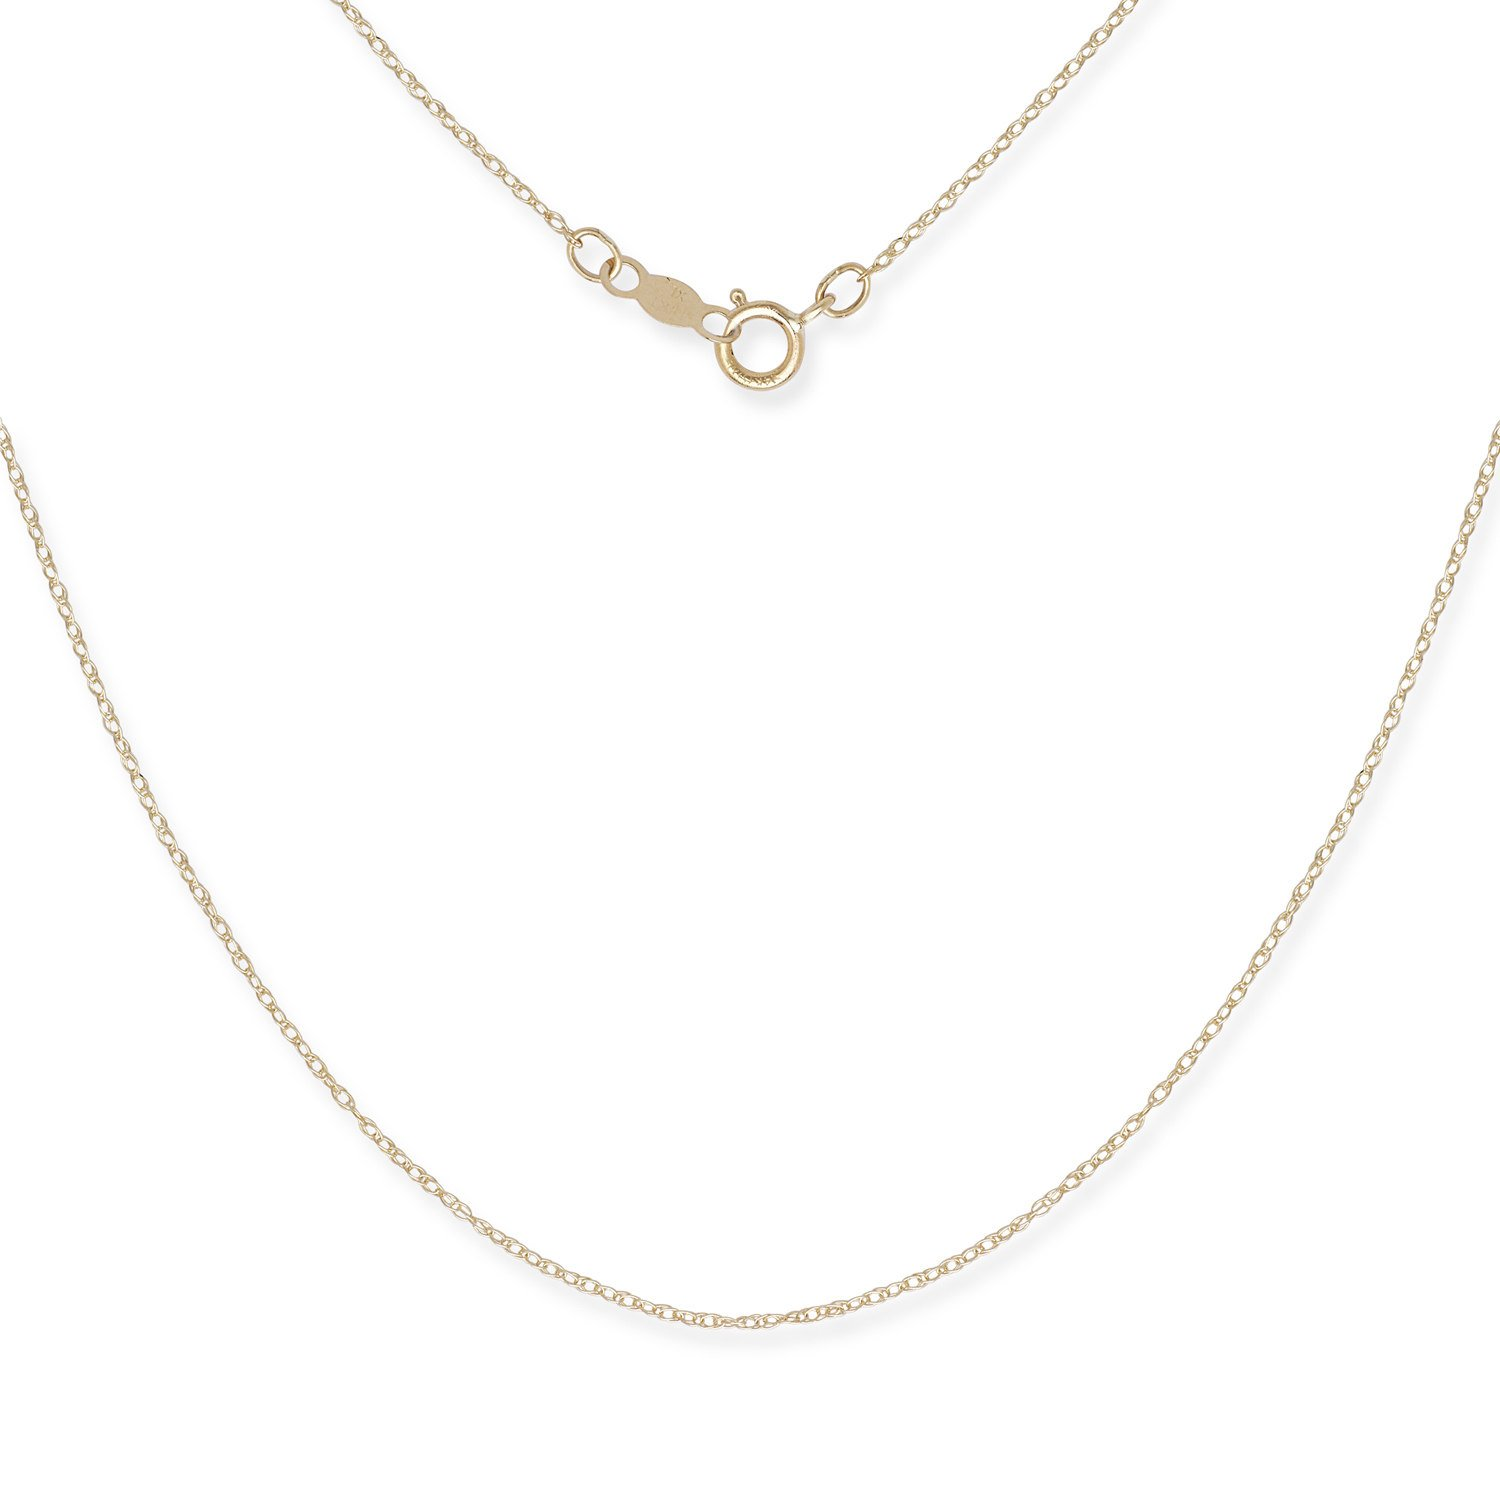 972e11aebfdb5 JewelryWeb Solid 14k Gold Women's 16-22 Inch Carded Rope Chain Necklace  (Yellow or White)